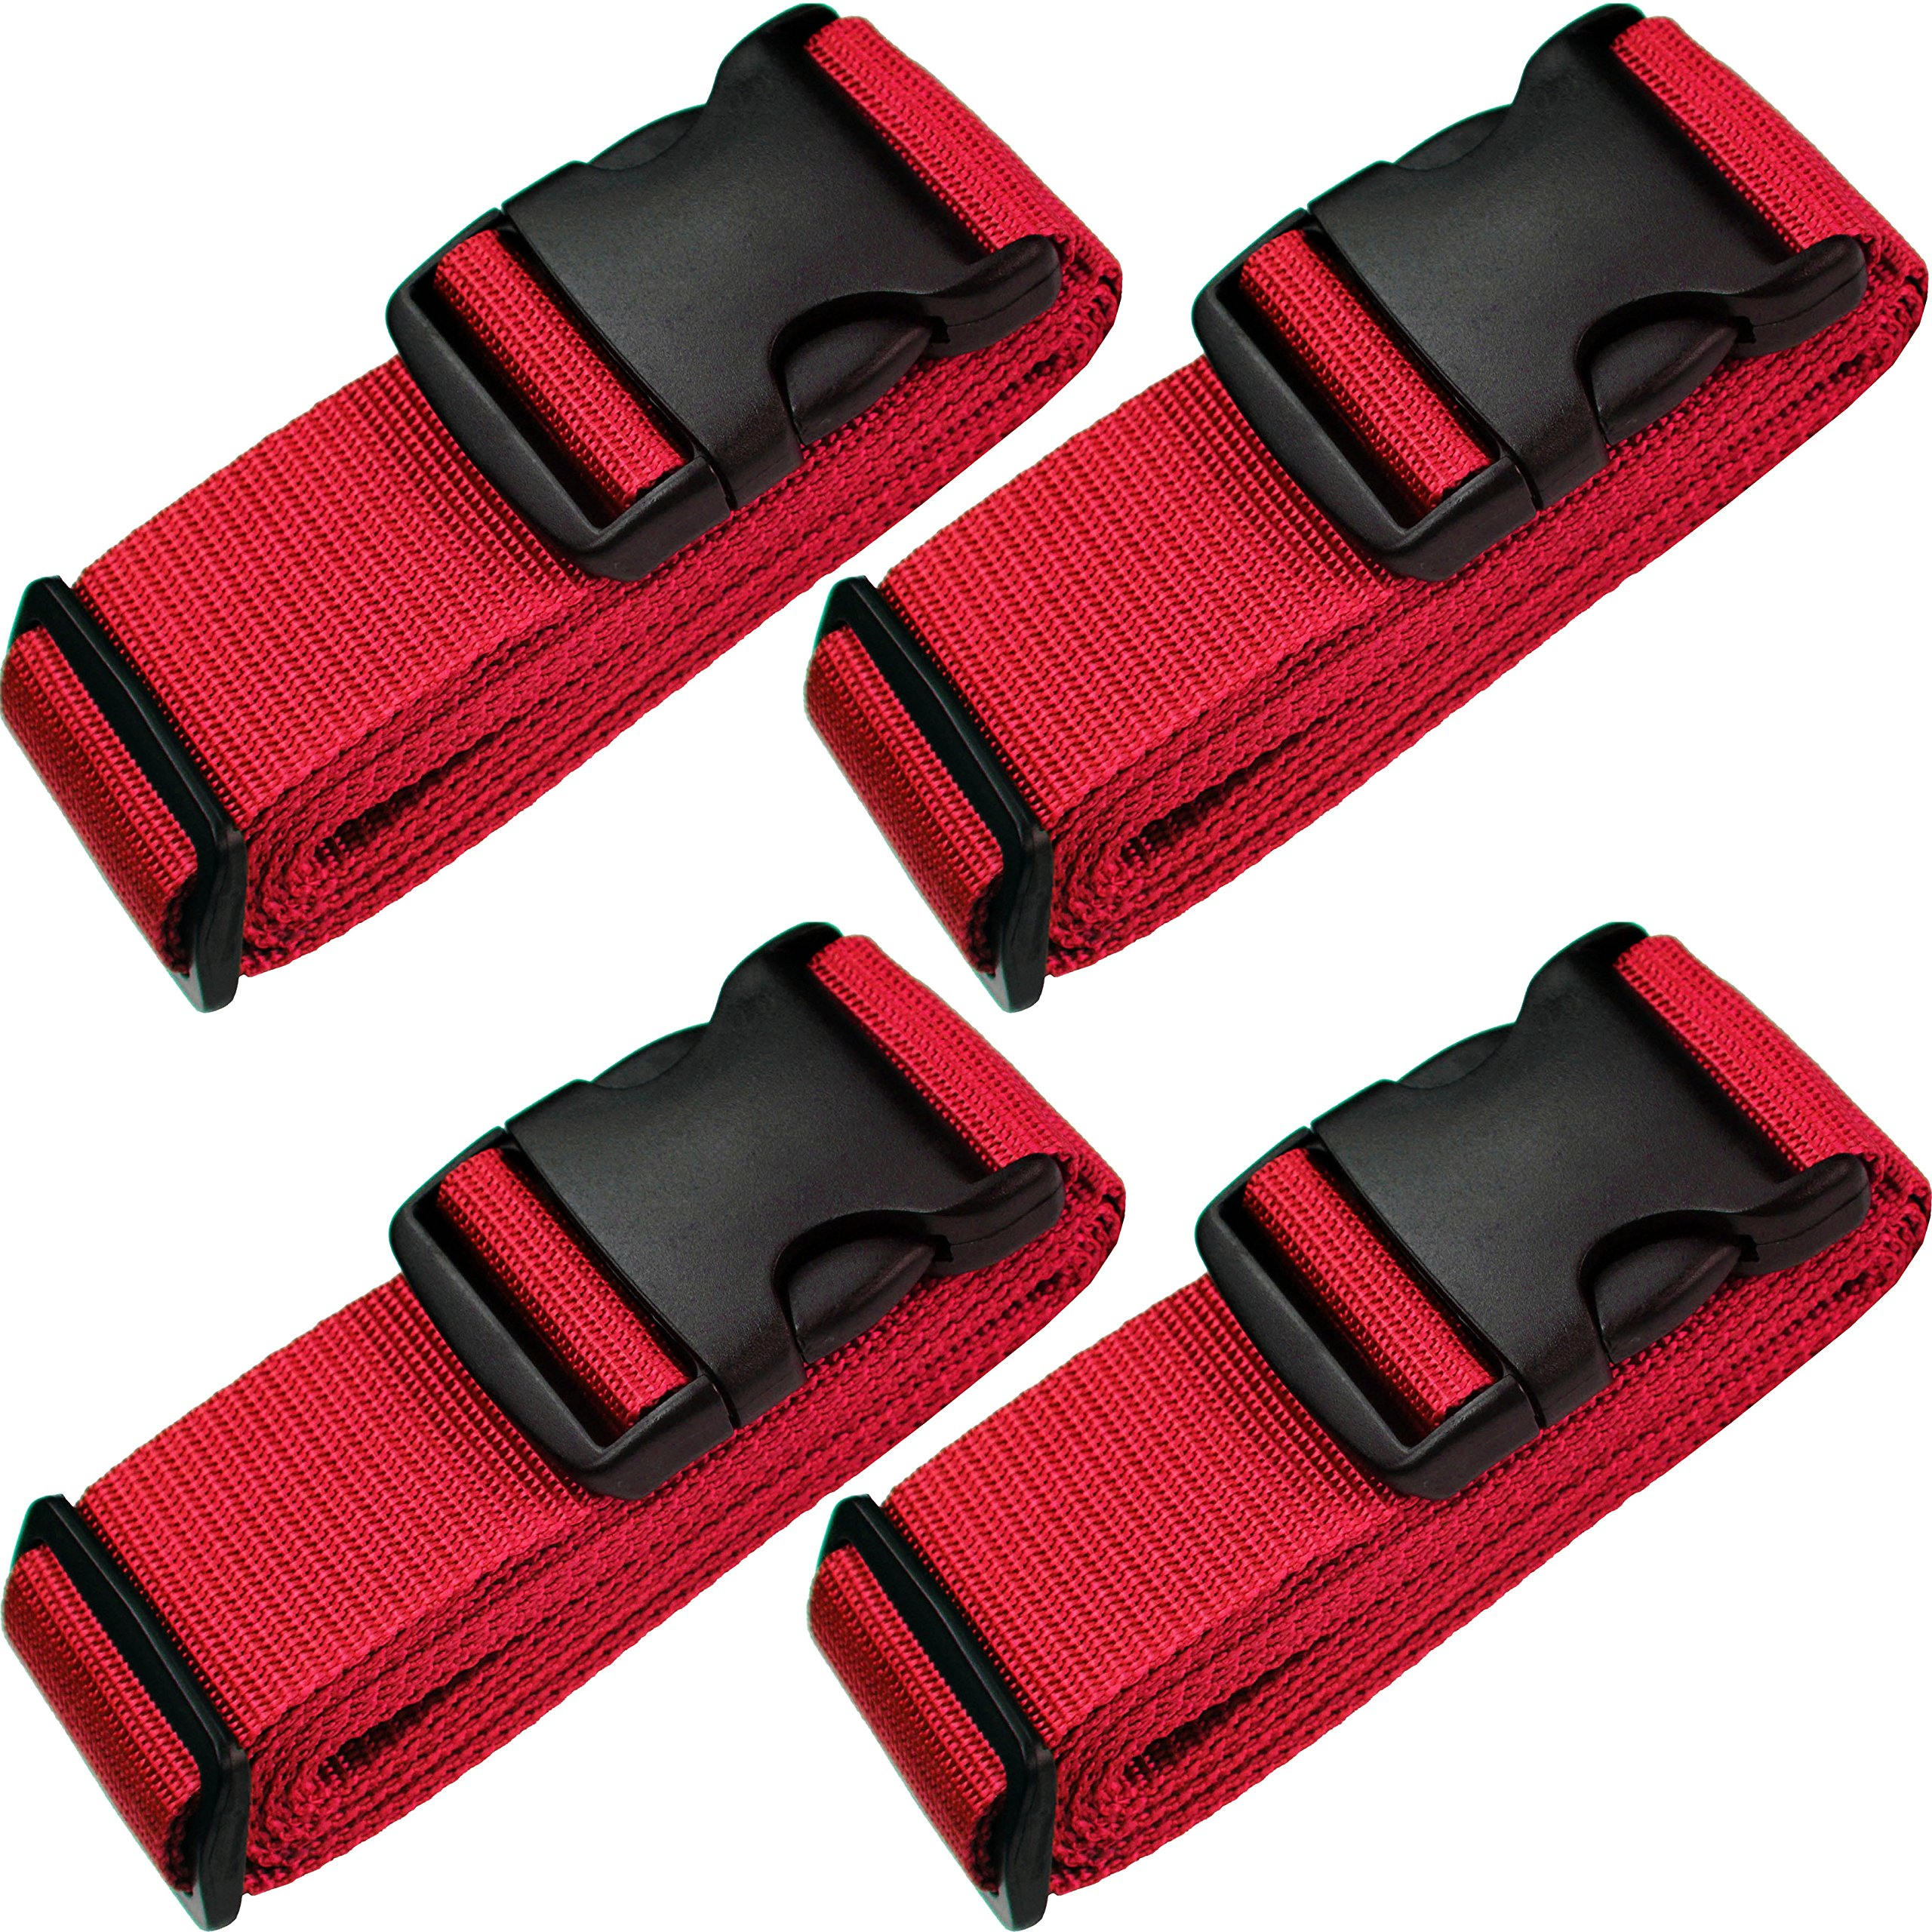 TRANVERS Luggage Strap Belt For Suitcases Baggage Belt Heavy Duty Adjustable 4-Pack Red